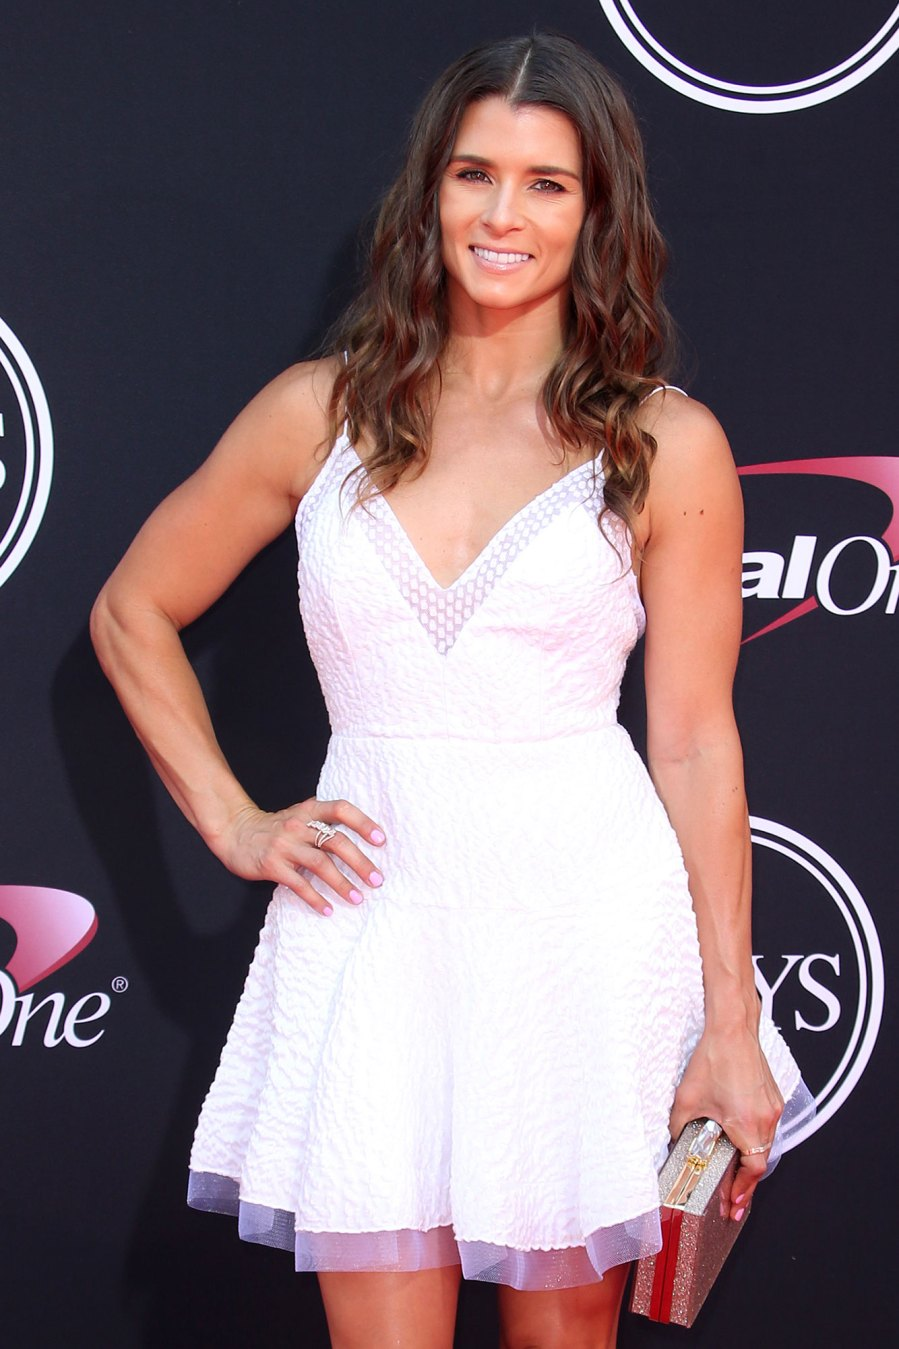 Danica Patrick Boyfriend Carter Comstock 5 Things to Know 2